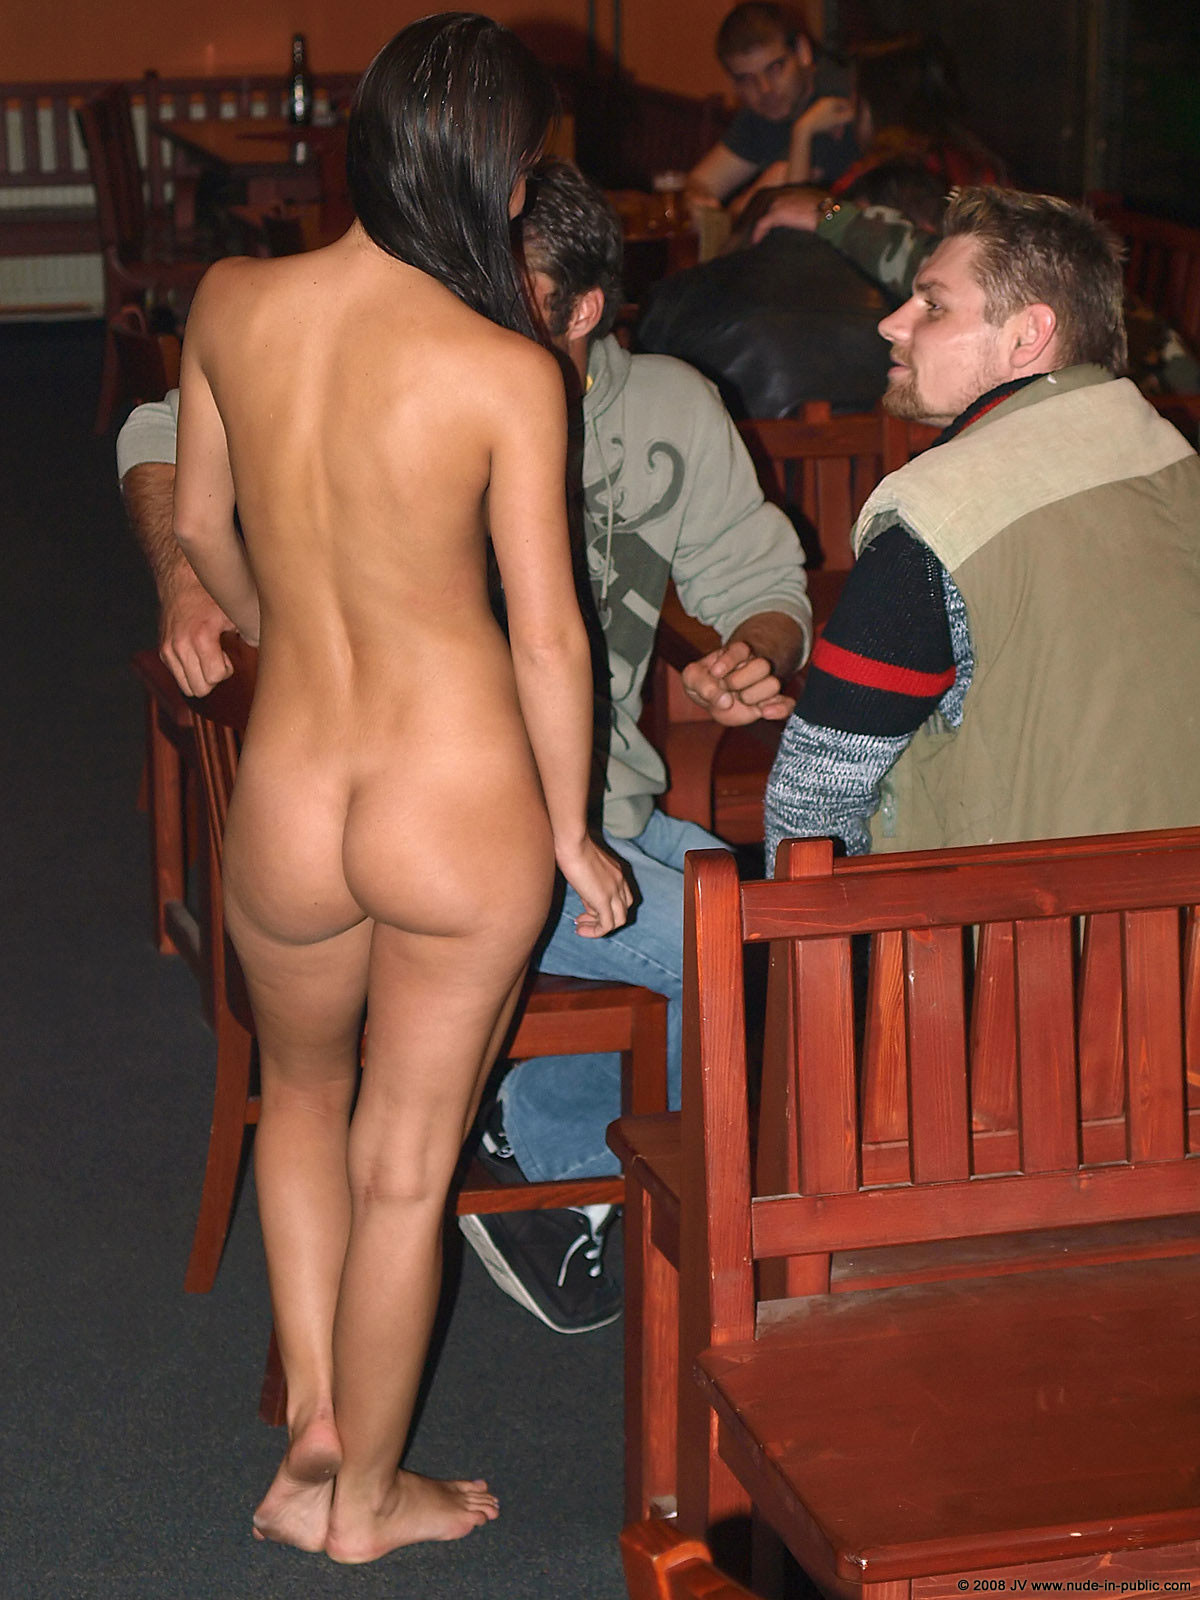 melisa-pub-beer-bar-girl-nude-in-public-74